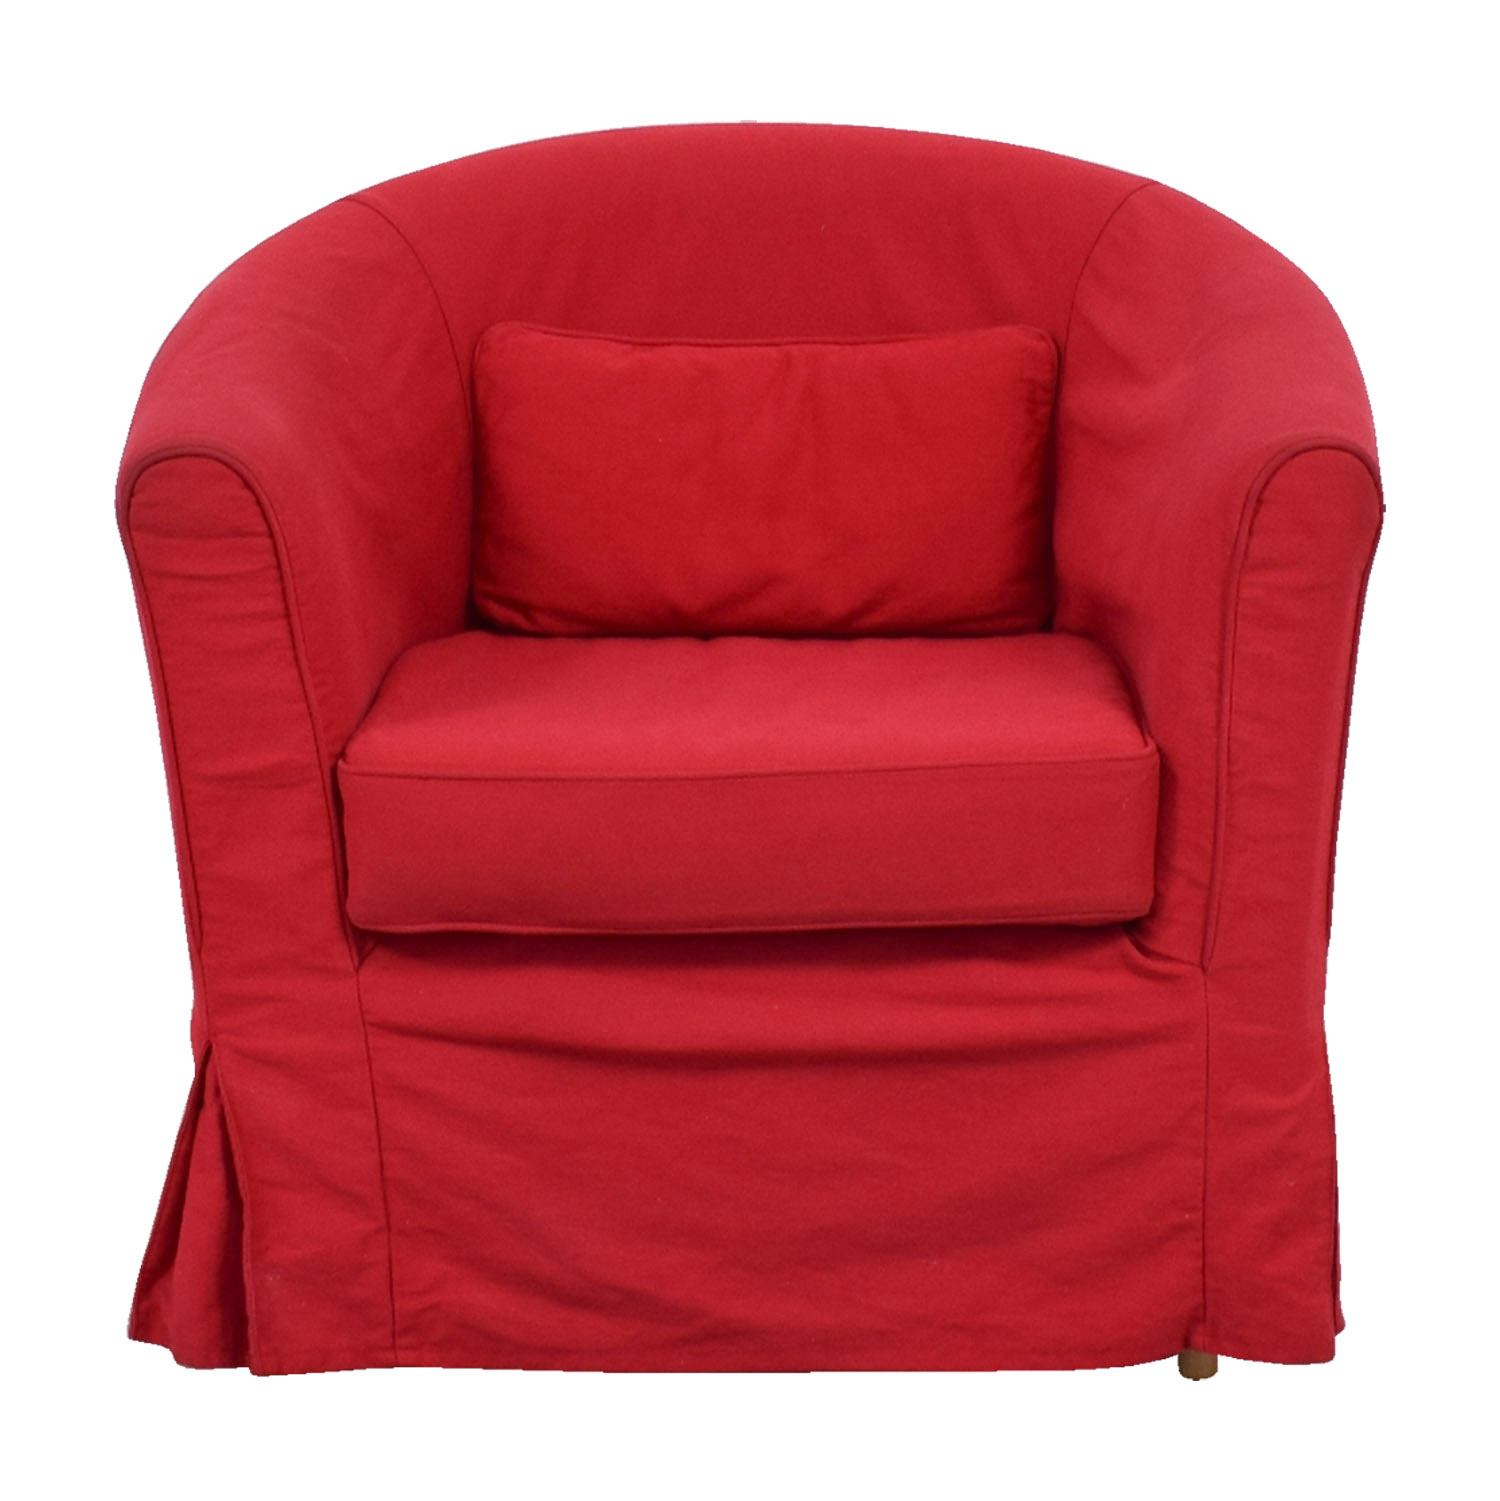 Crate & Barrel Crate & Barrel Red Upholstered Chair with Removable Cover coupon